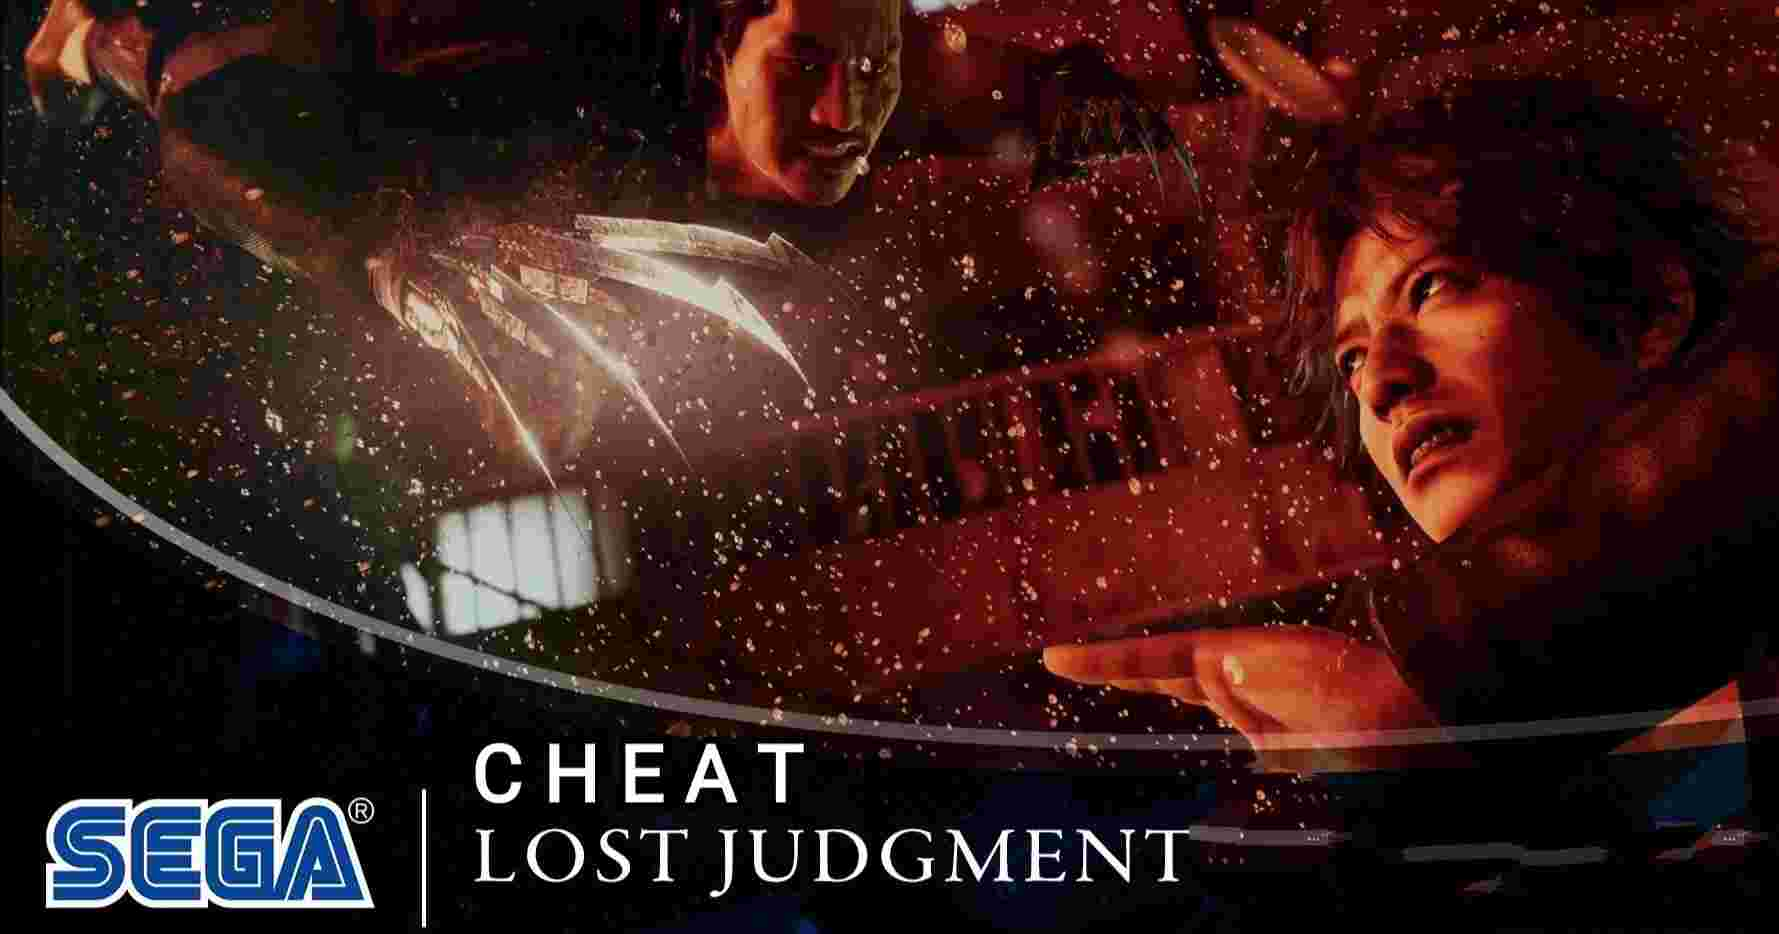 kode cheat lost judgement ps4 ps5 xbox